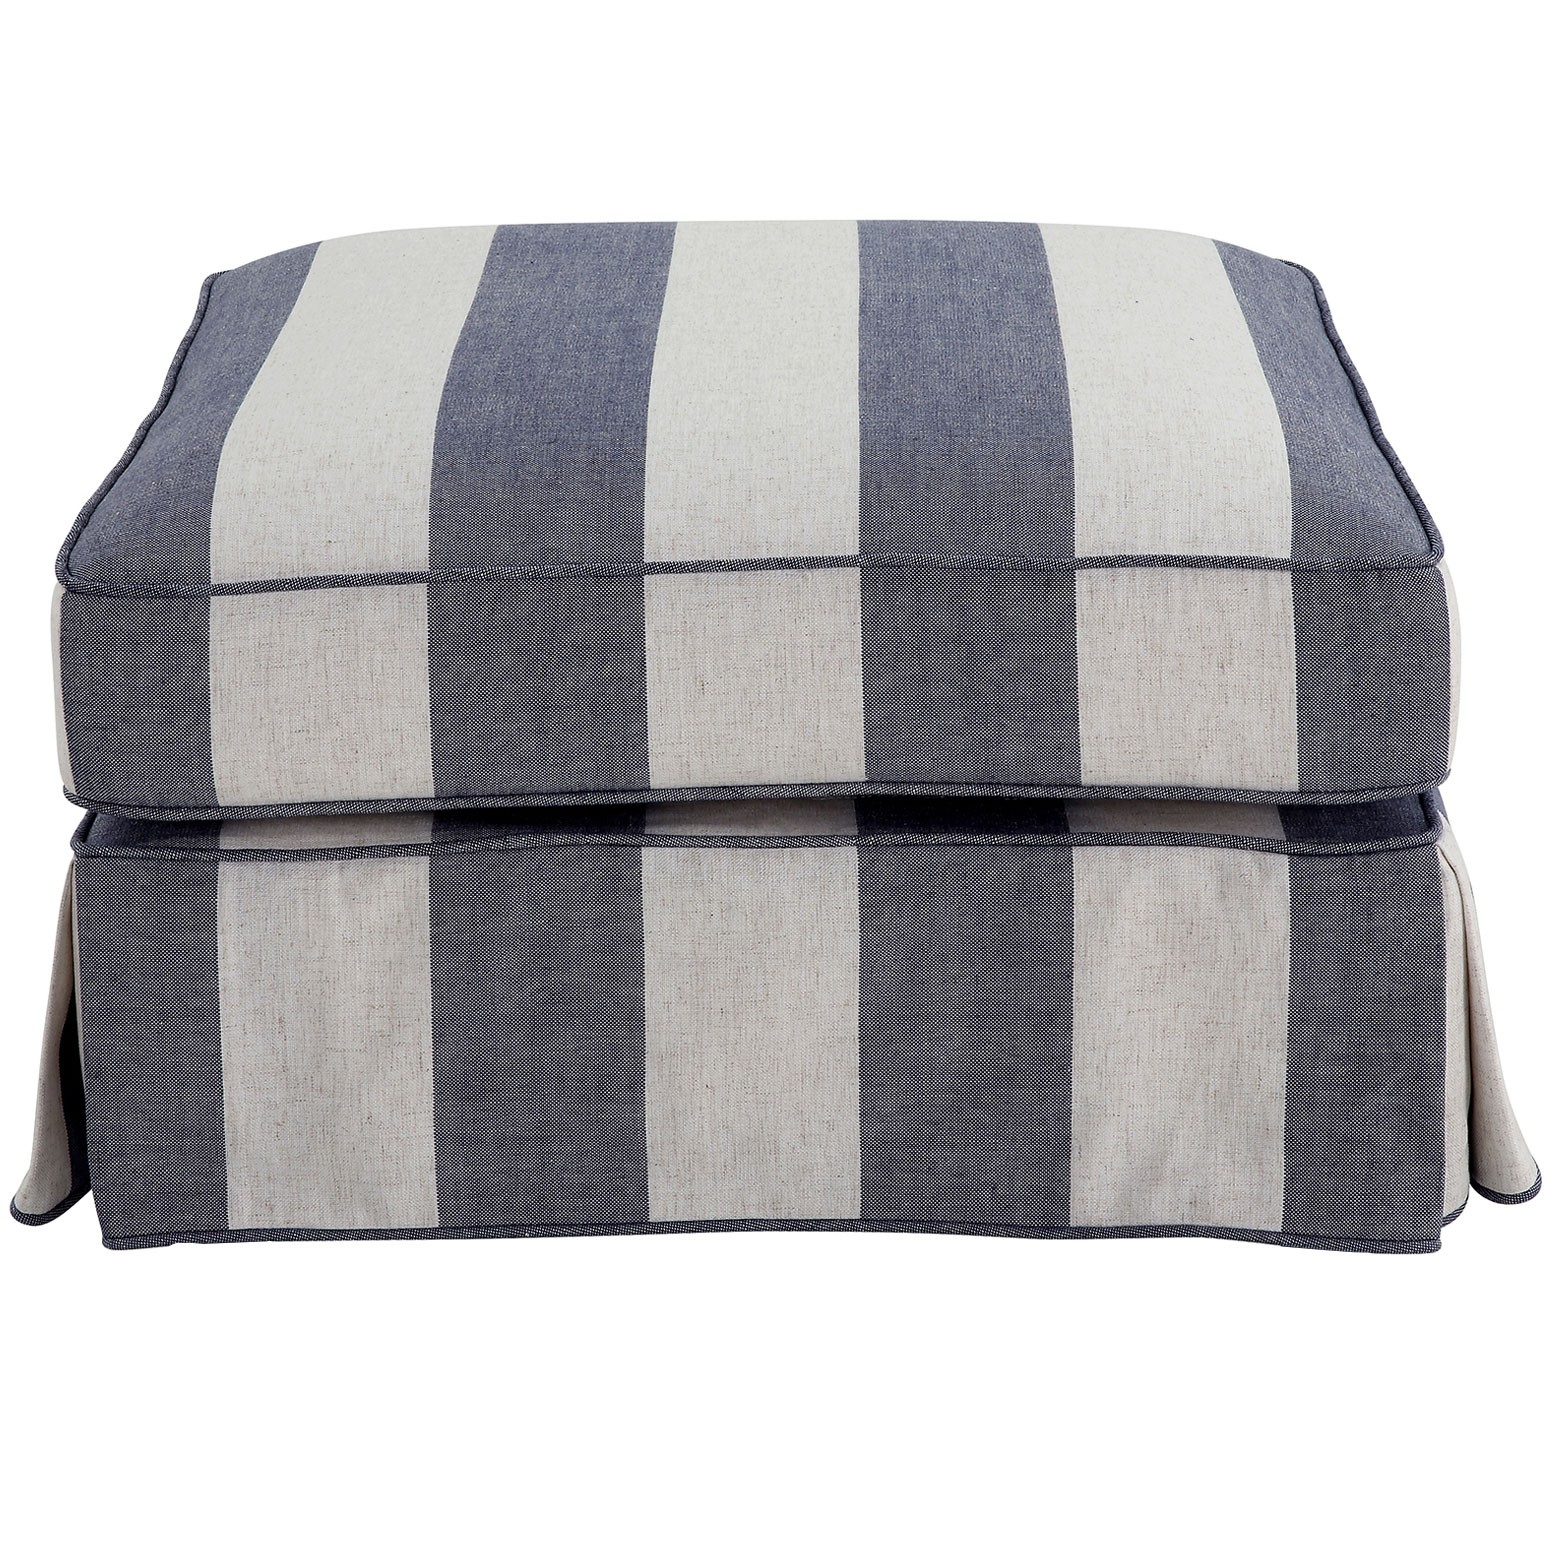 Noosa Fabric Ottoman Slipcover (Cover Only), Denim / Cream Stripe